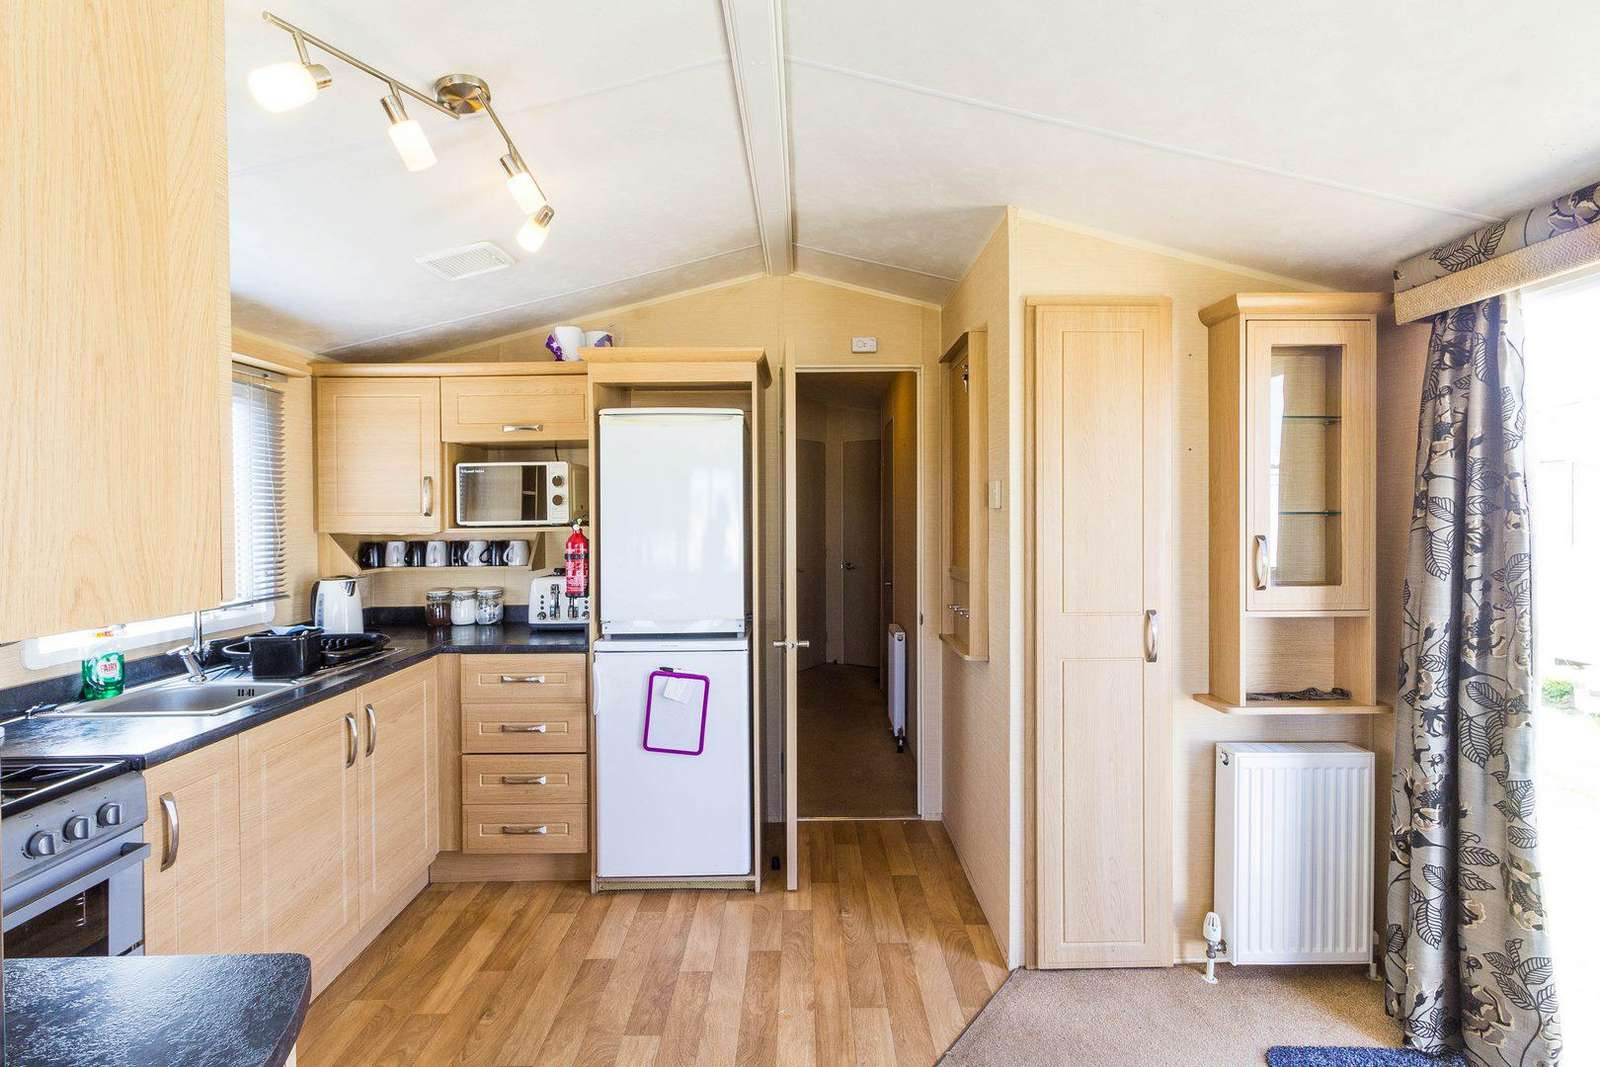 You can find a full size fridge and freezer in this self-catering accommodation!